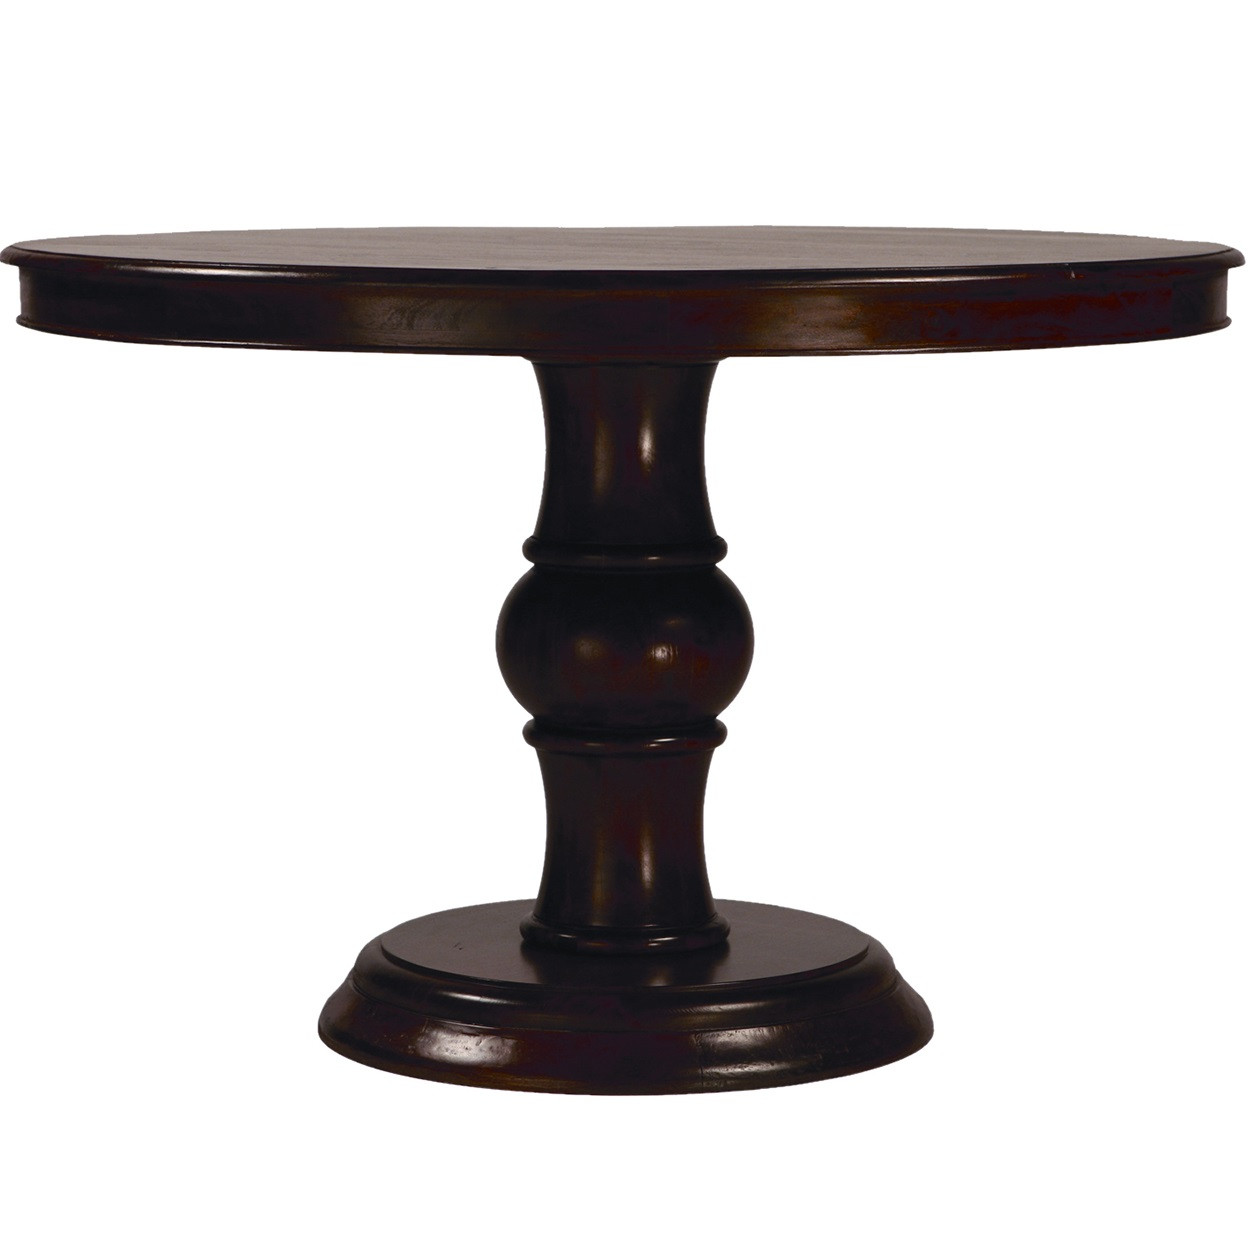 lauren dark wood round pedestal dining table 47 zin home. Black Bedroom Furniture Sets. Home Design Ideas